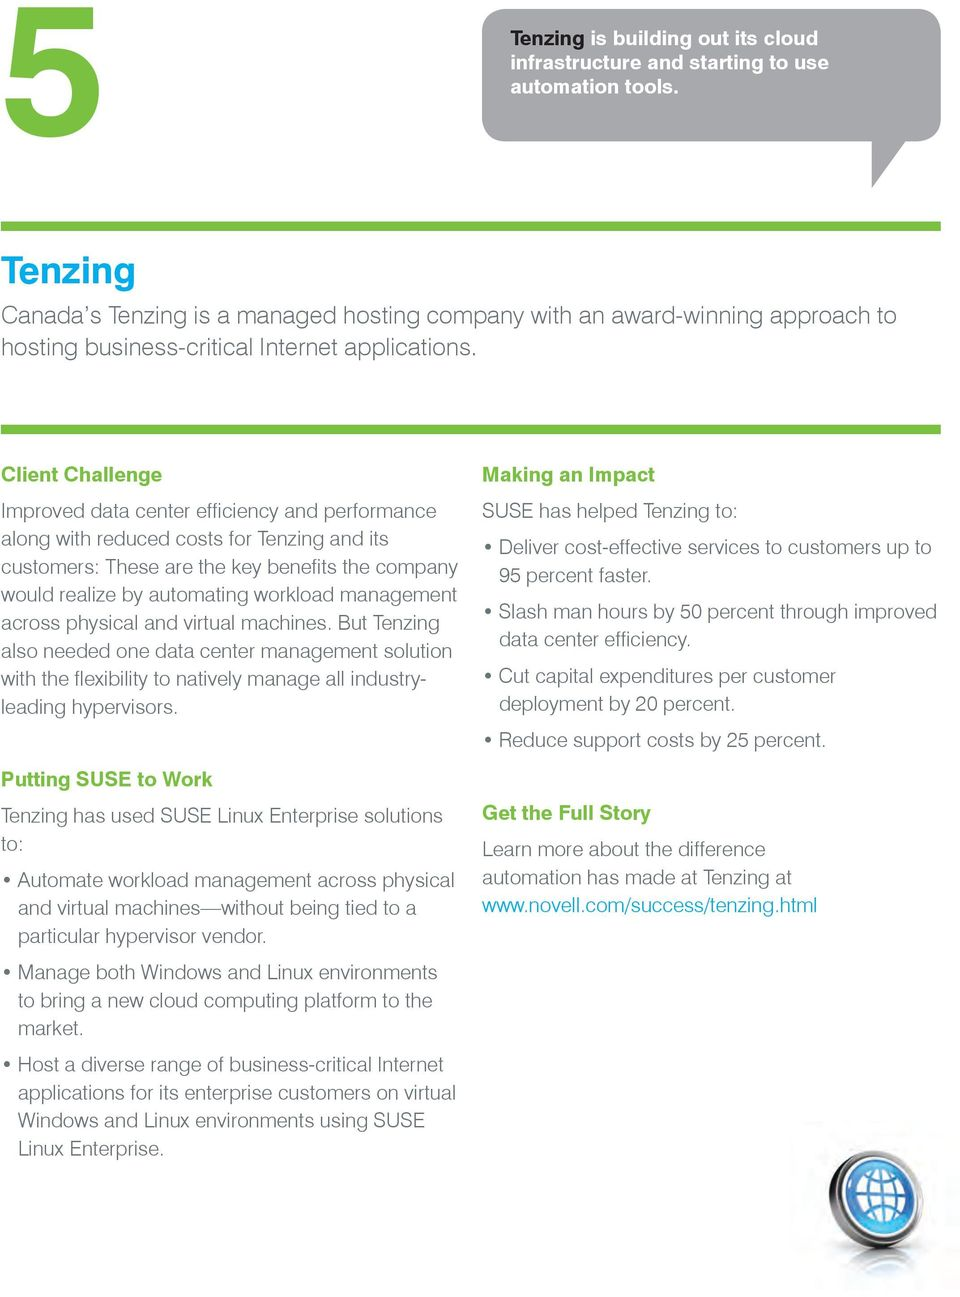 Client Challenge Improved data center efficiency and performance along with reduced costs for Tenzing and its customers: These are the key benefits the company would realize by automating workload